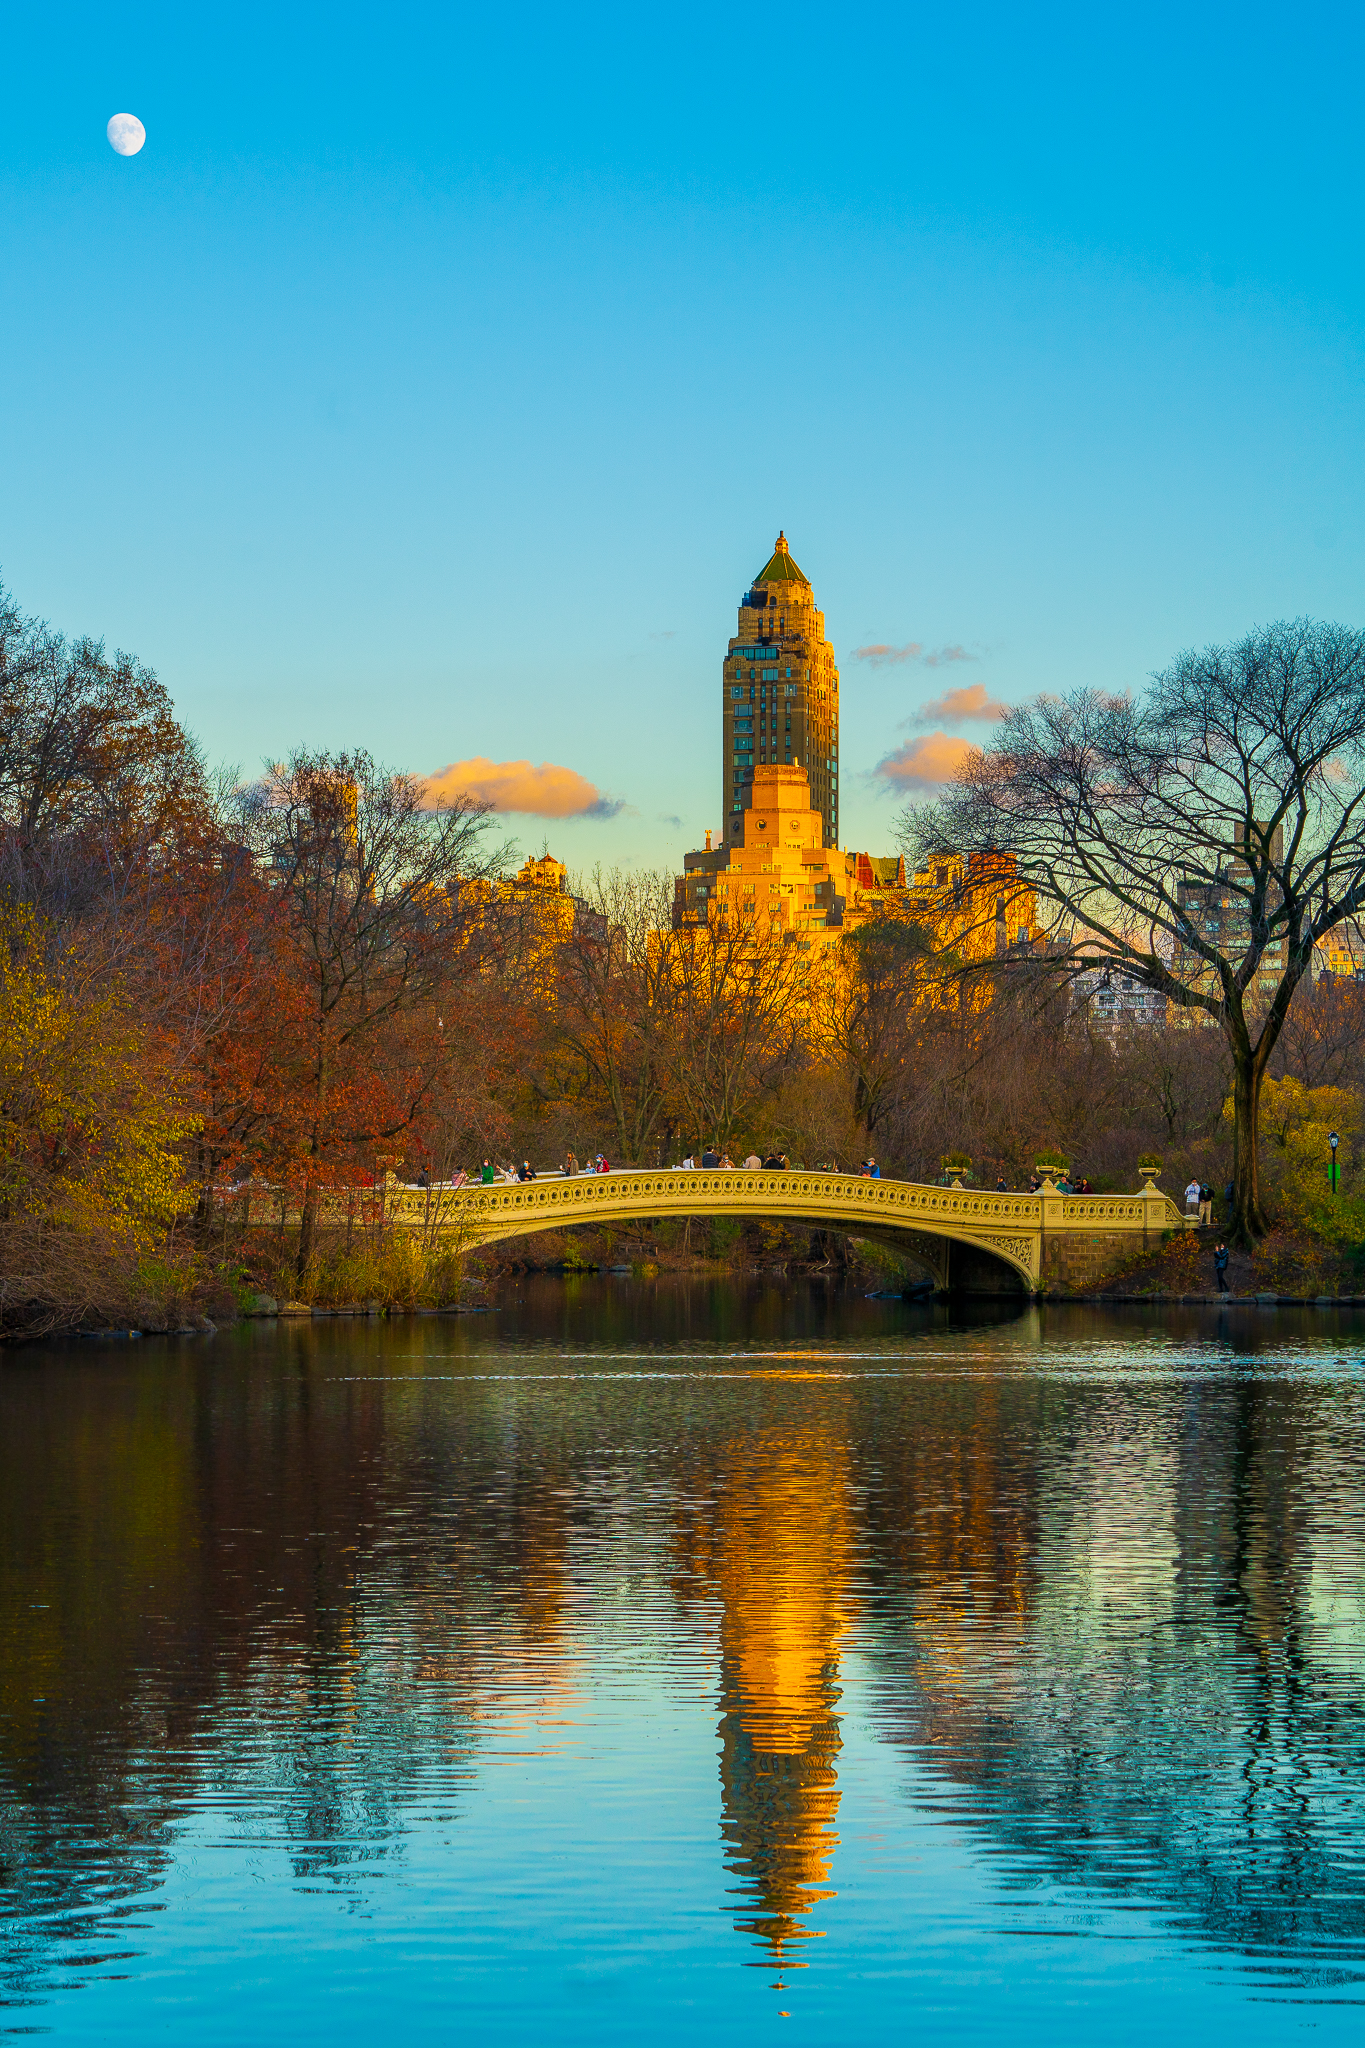 a photo of the moon rising over bow bridge in central park new york